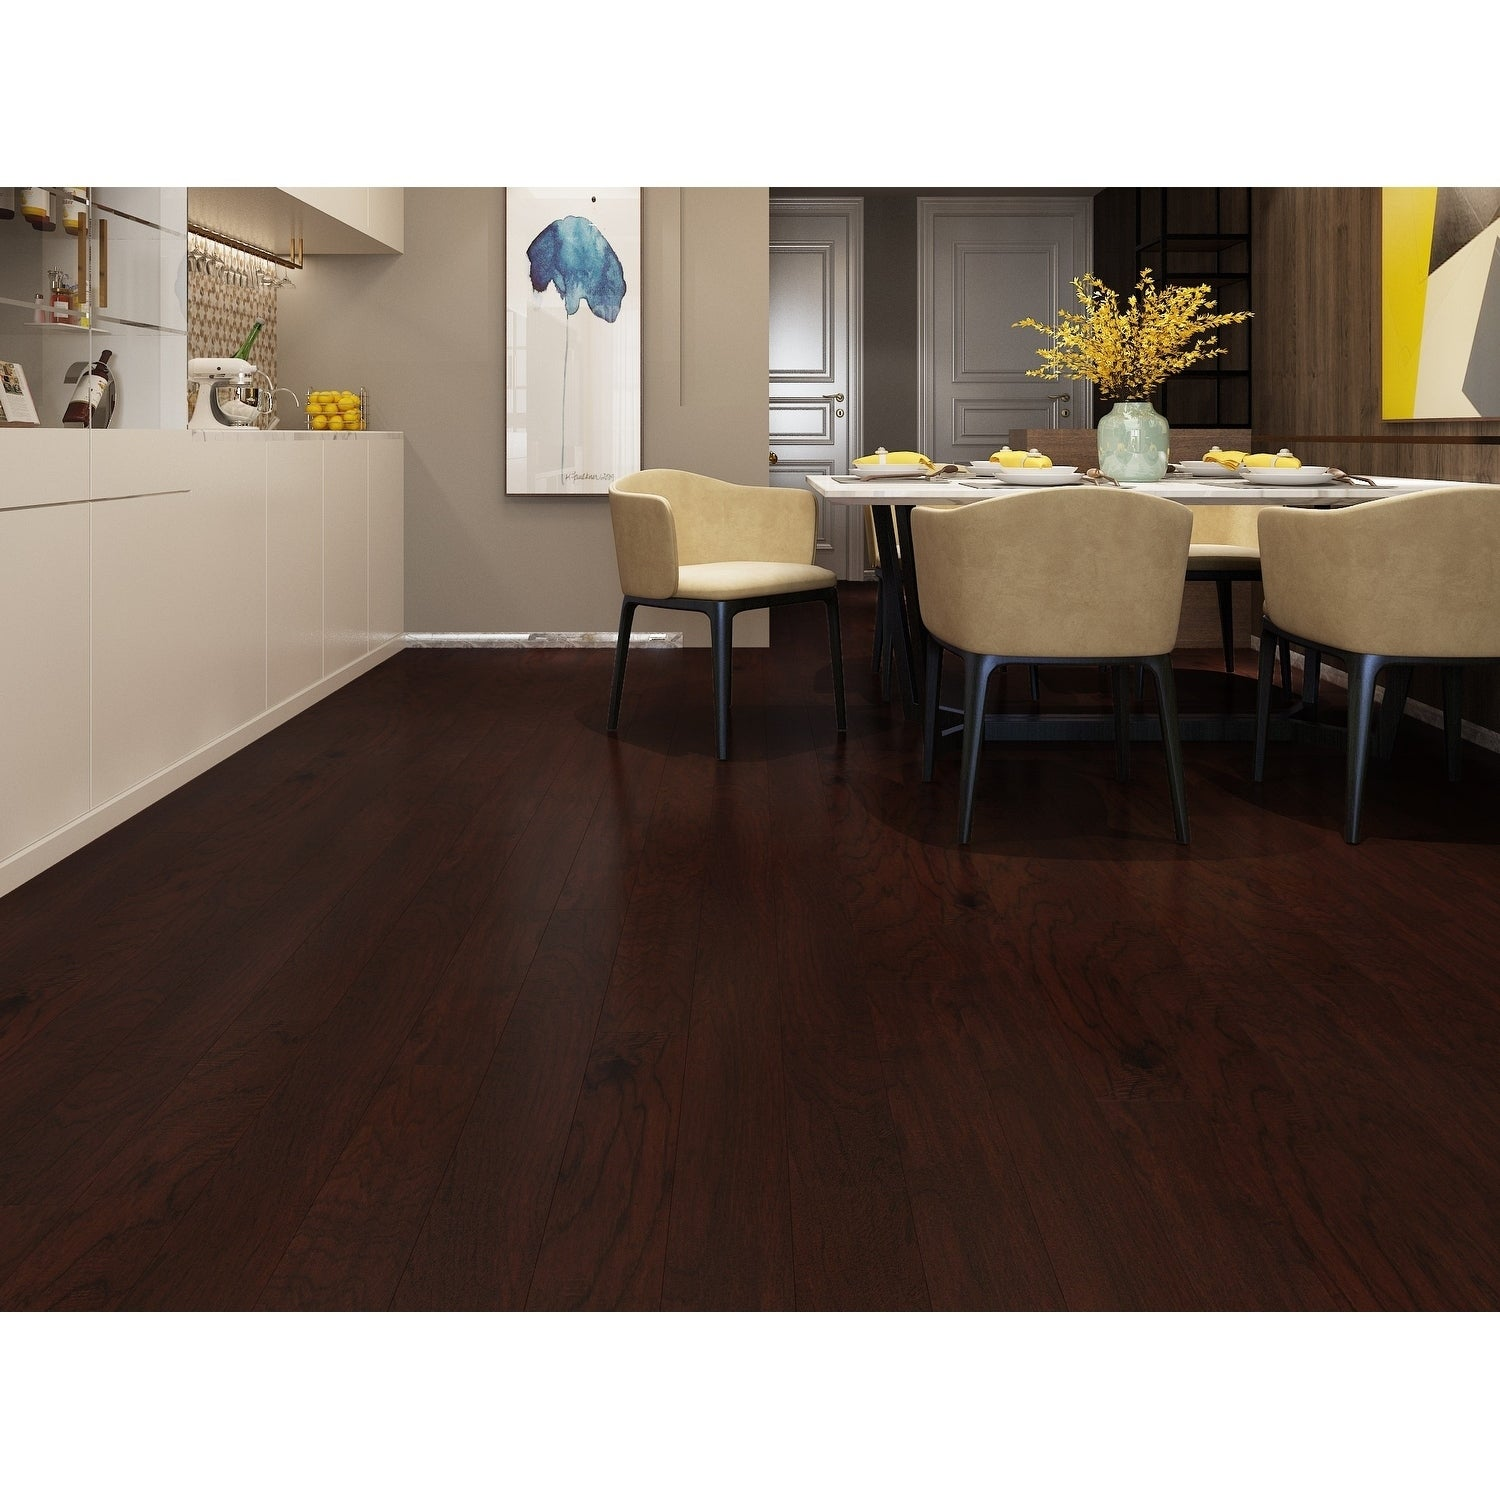 Shop Black Friday Deals On Caramel Finish Engineered Hickory Wood Flooring 19 68 Sq Ft Carton On Sale Overstock 27543922